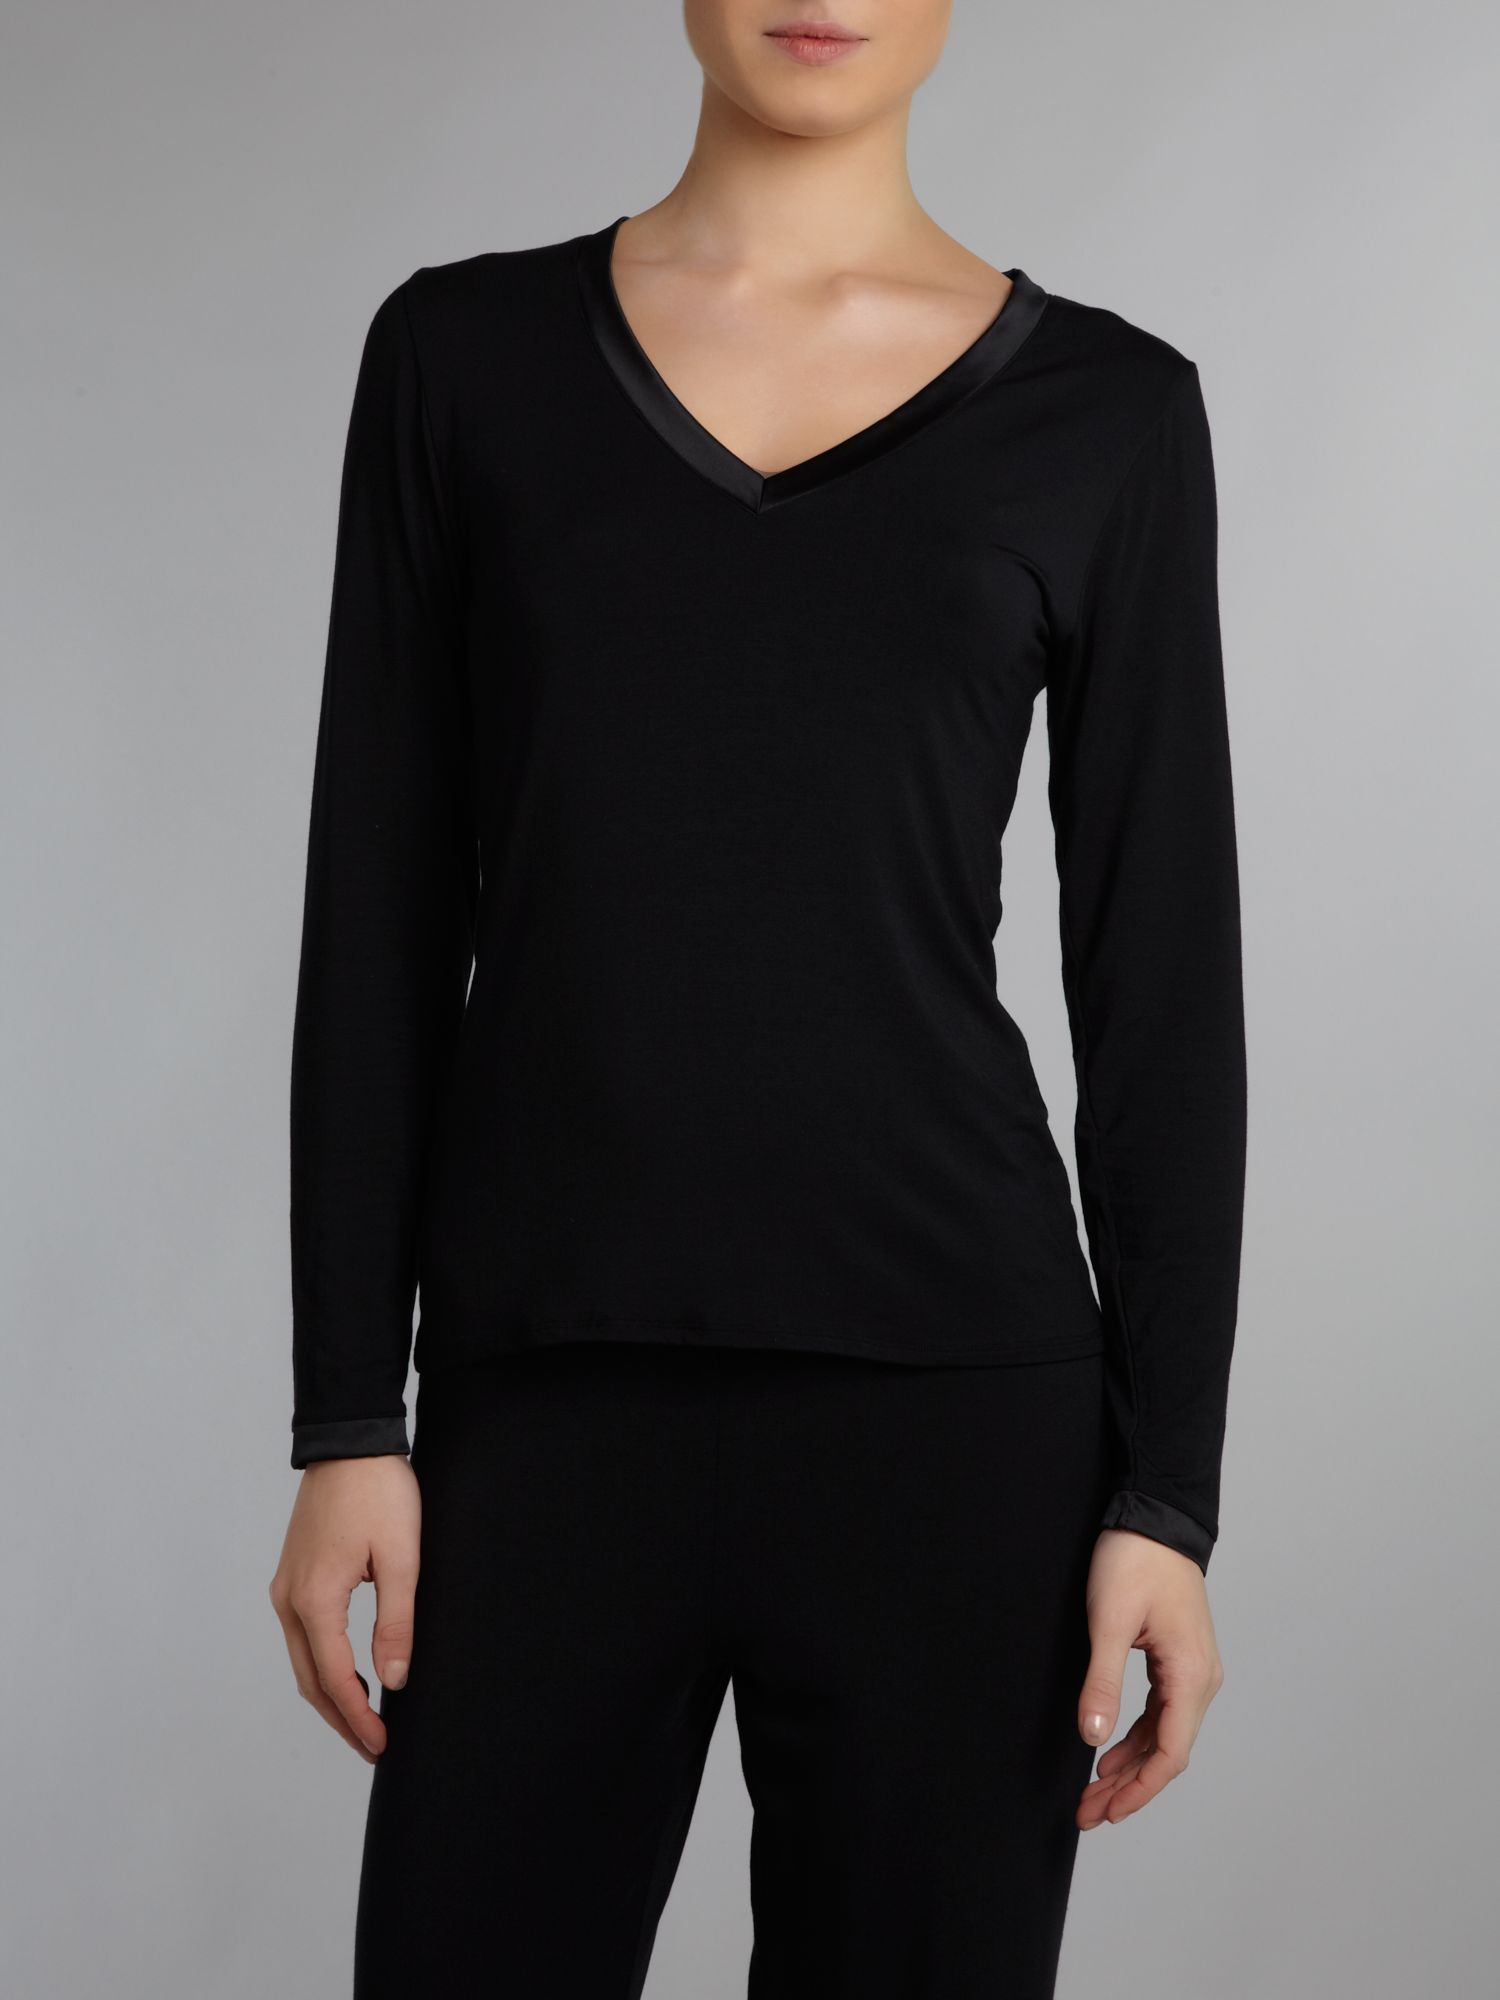 Heat shimmer long sleeve pj top